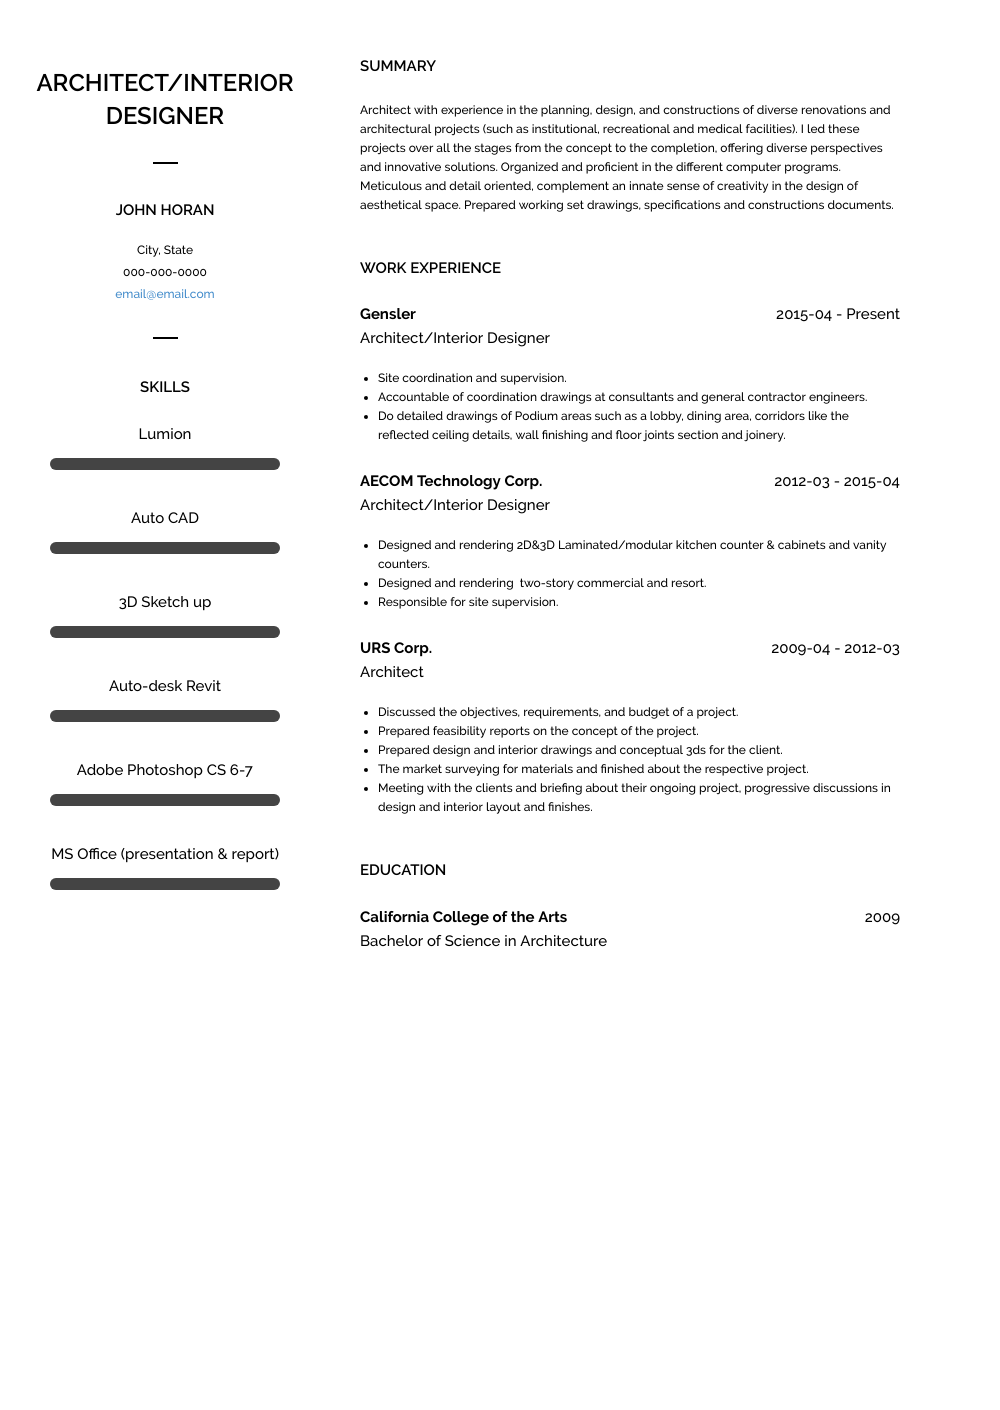 Interior Designer Resume Samples & Templates VisualCV